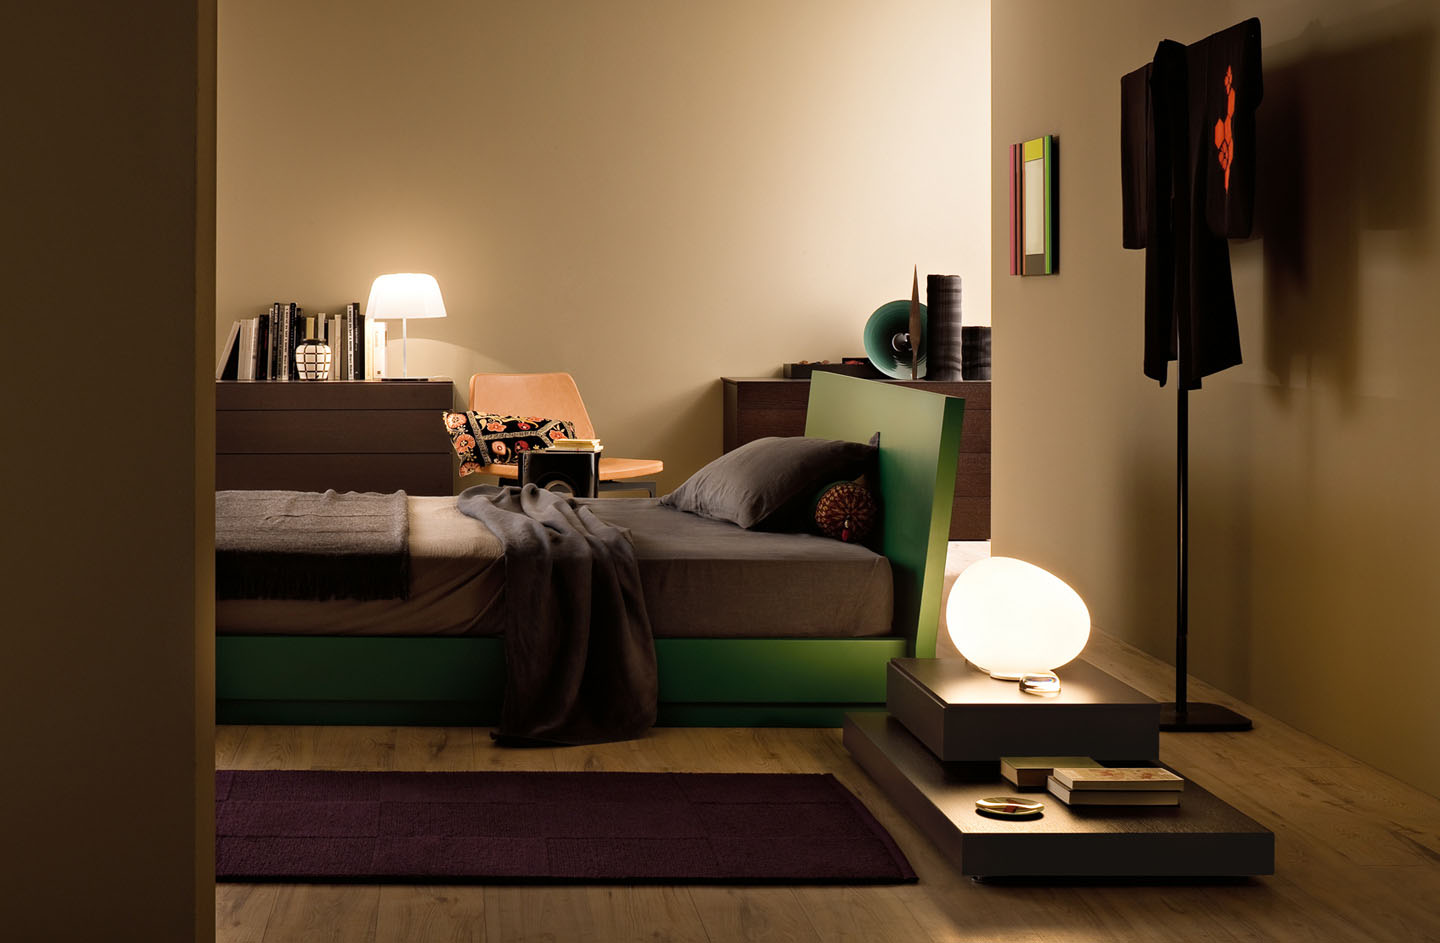 foscarini gregg table lamp buy from campbell watson uk